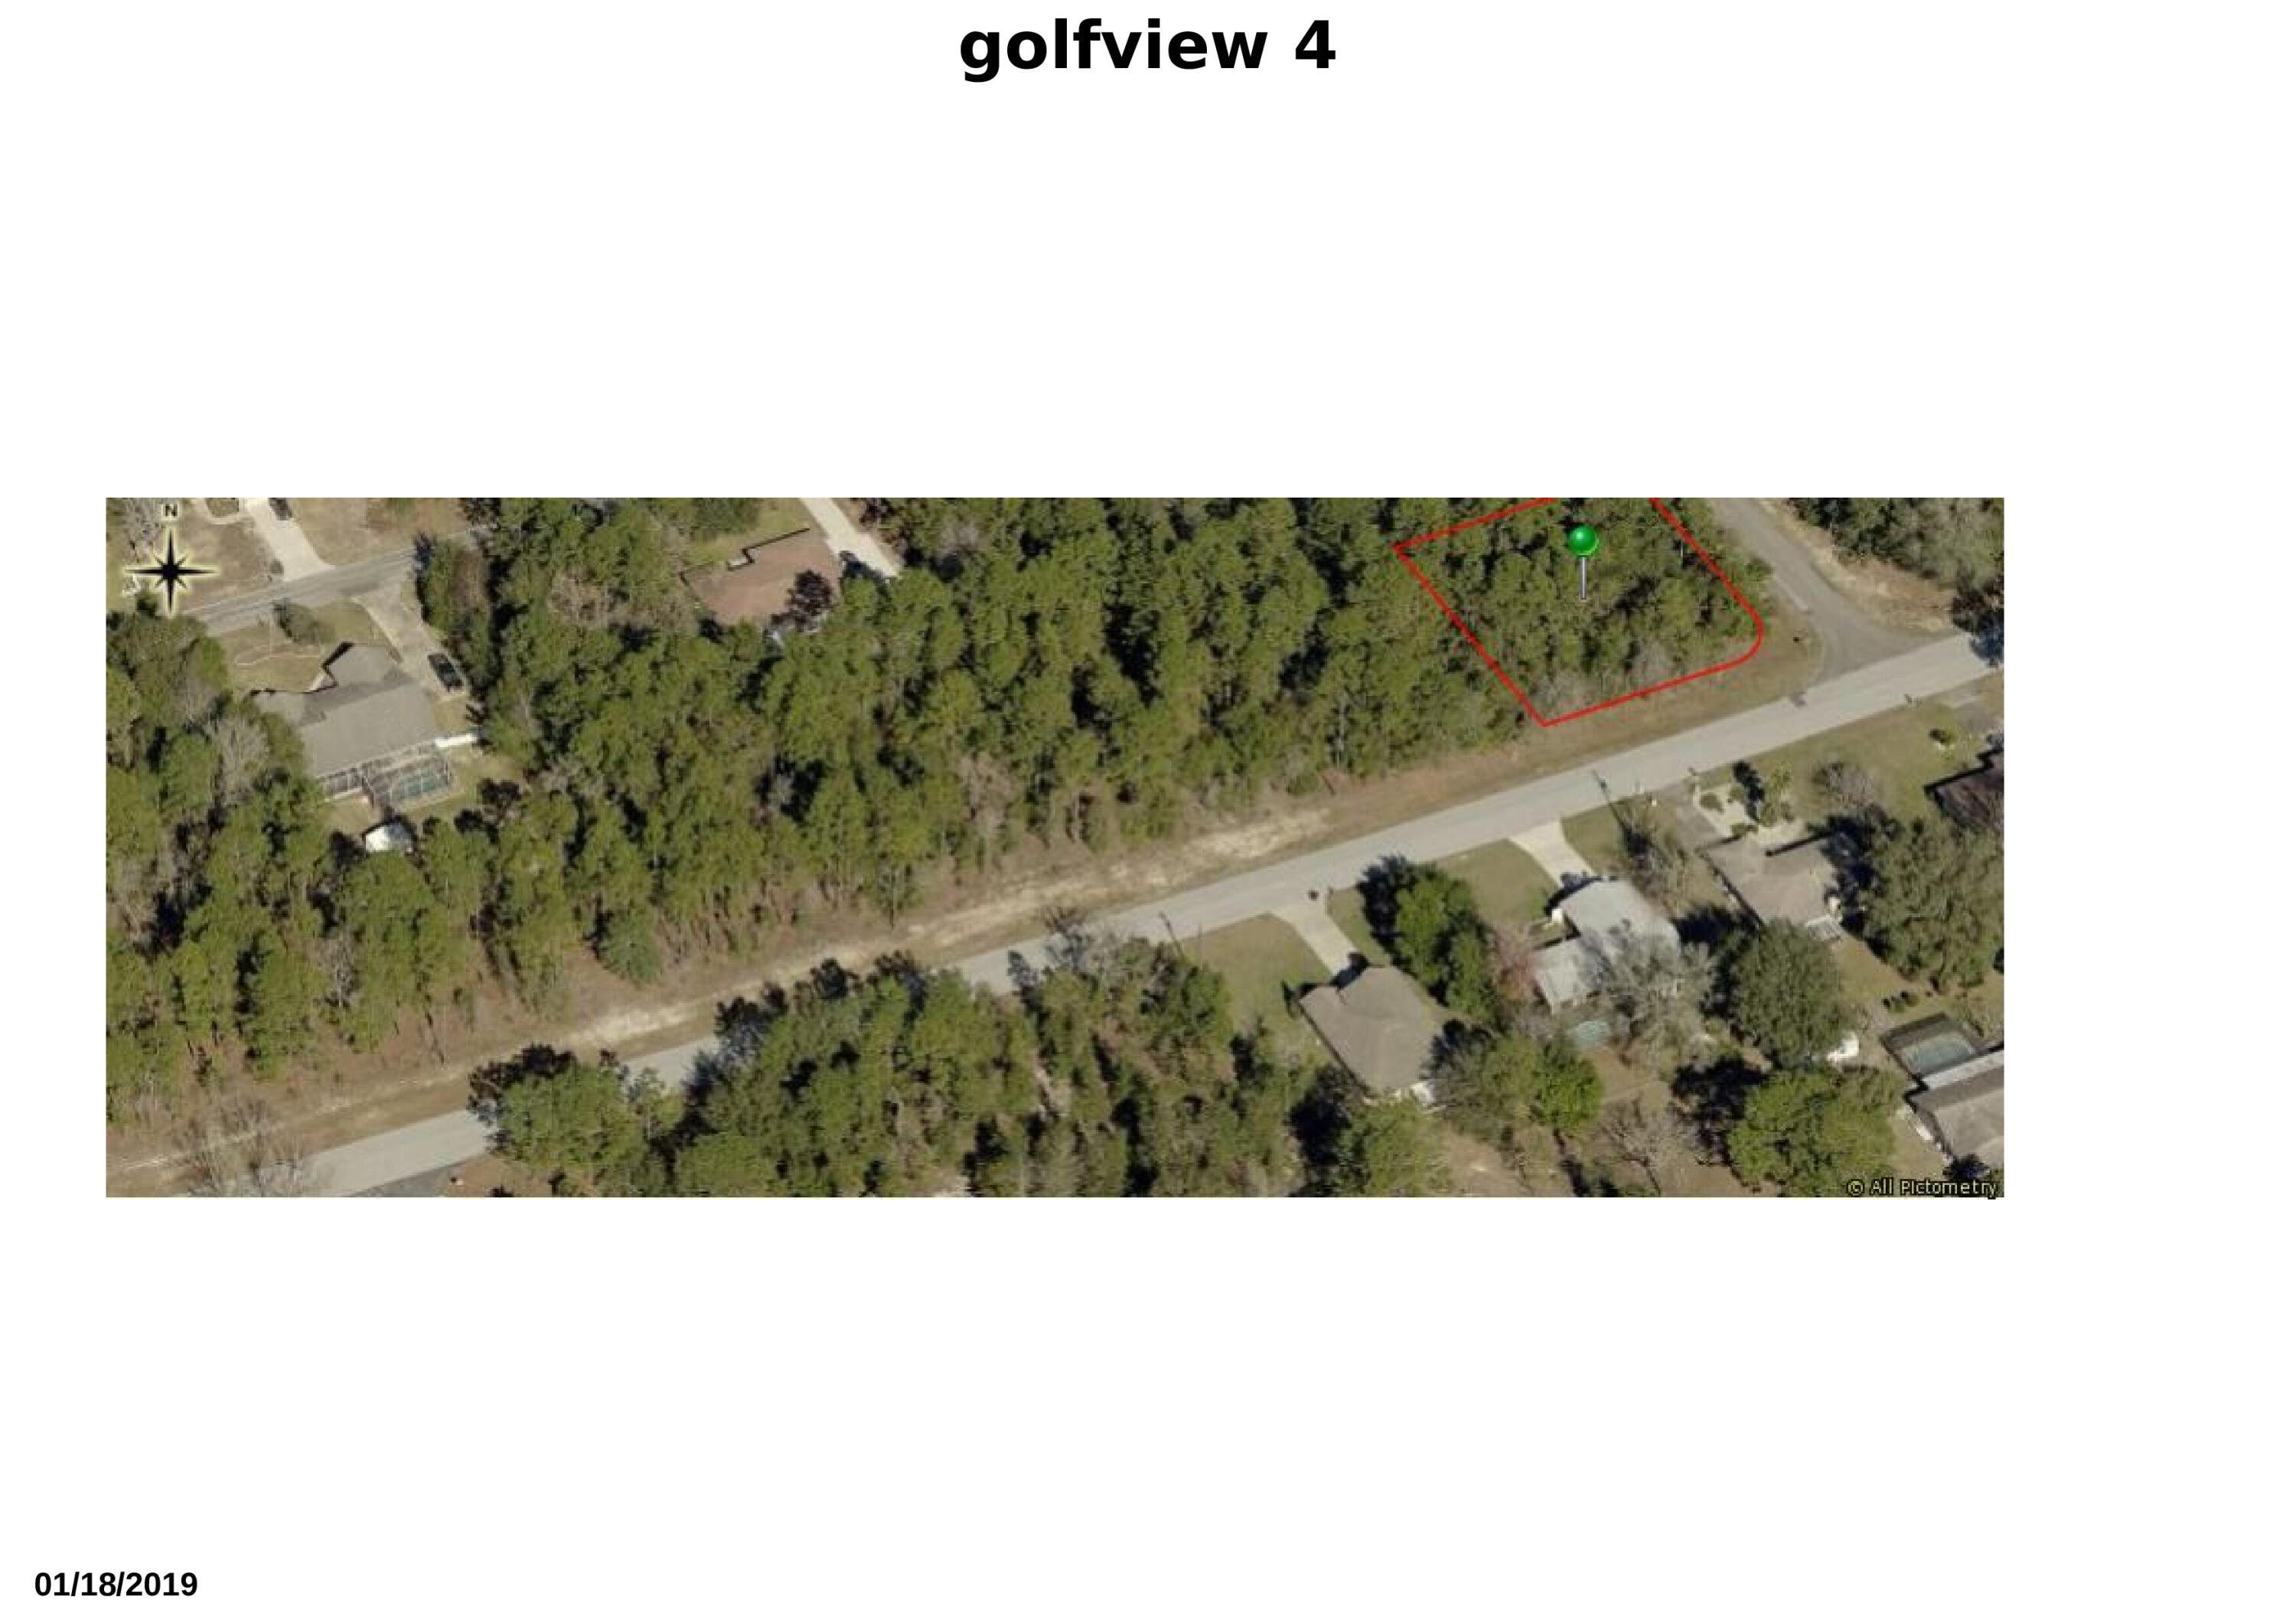 golfview 4